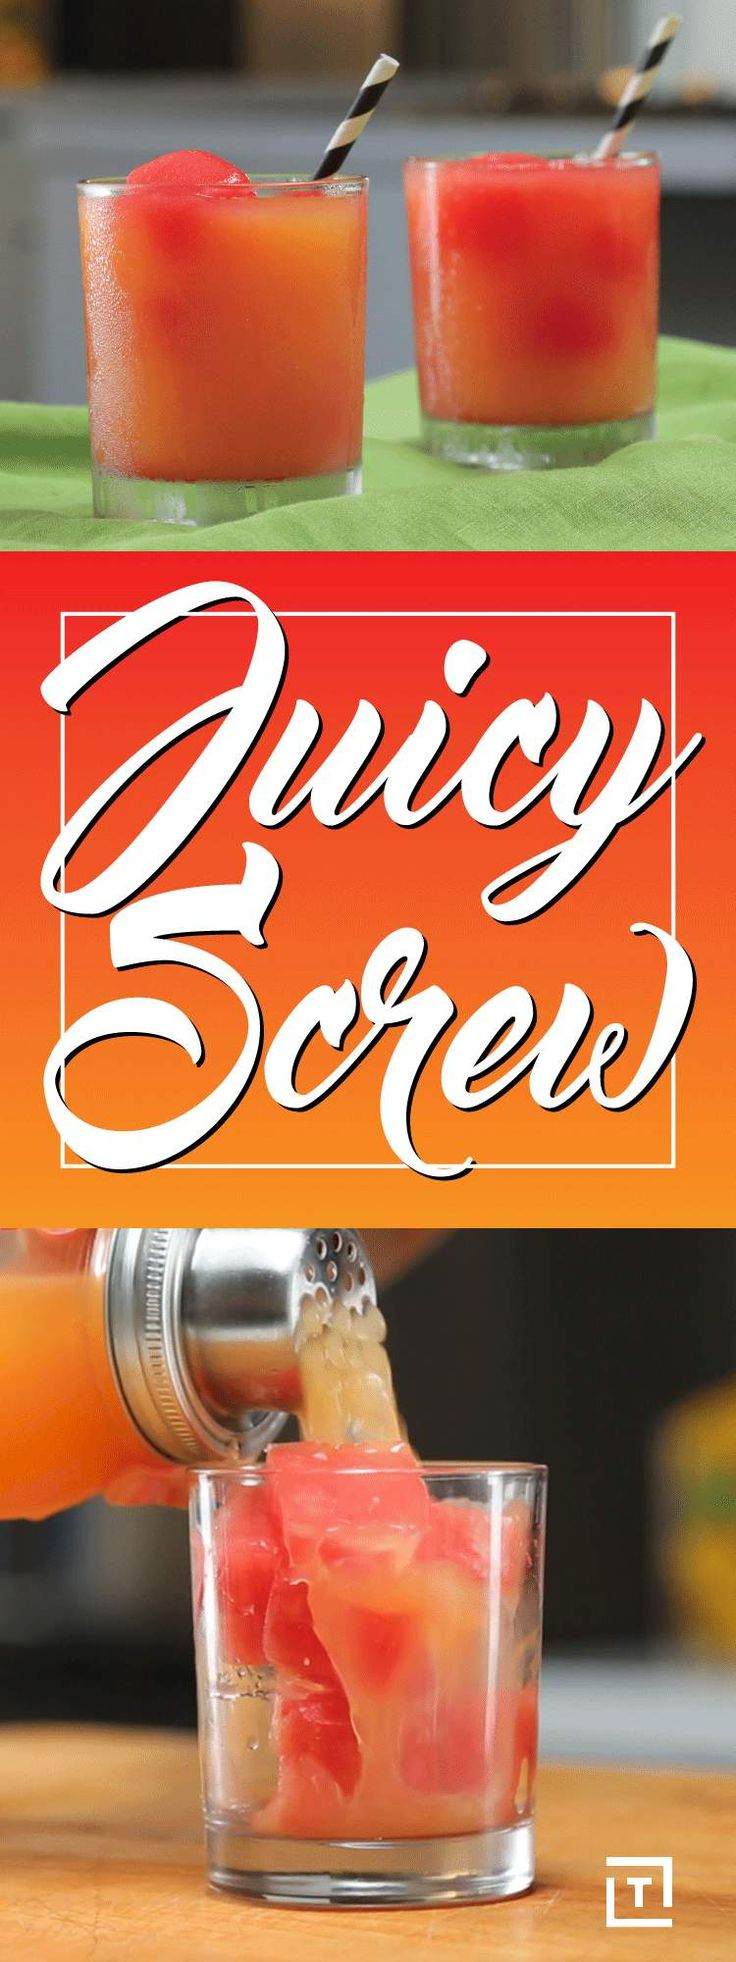 Juicy Screw Watermelon Vodka Cocktail Recipe Video - Thrillist